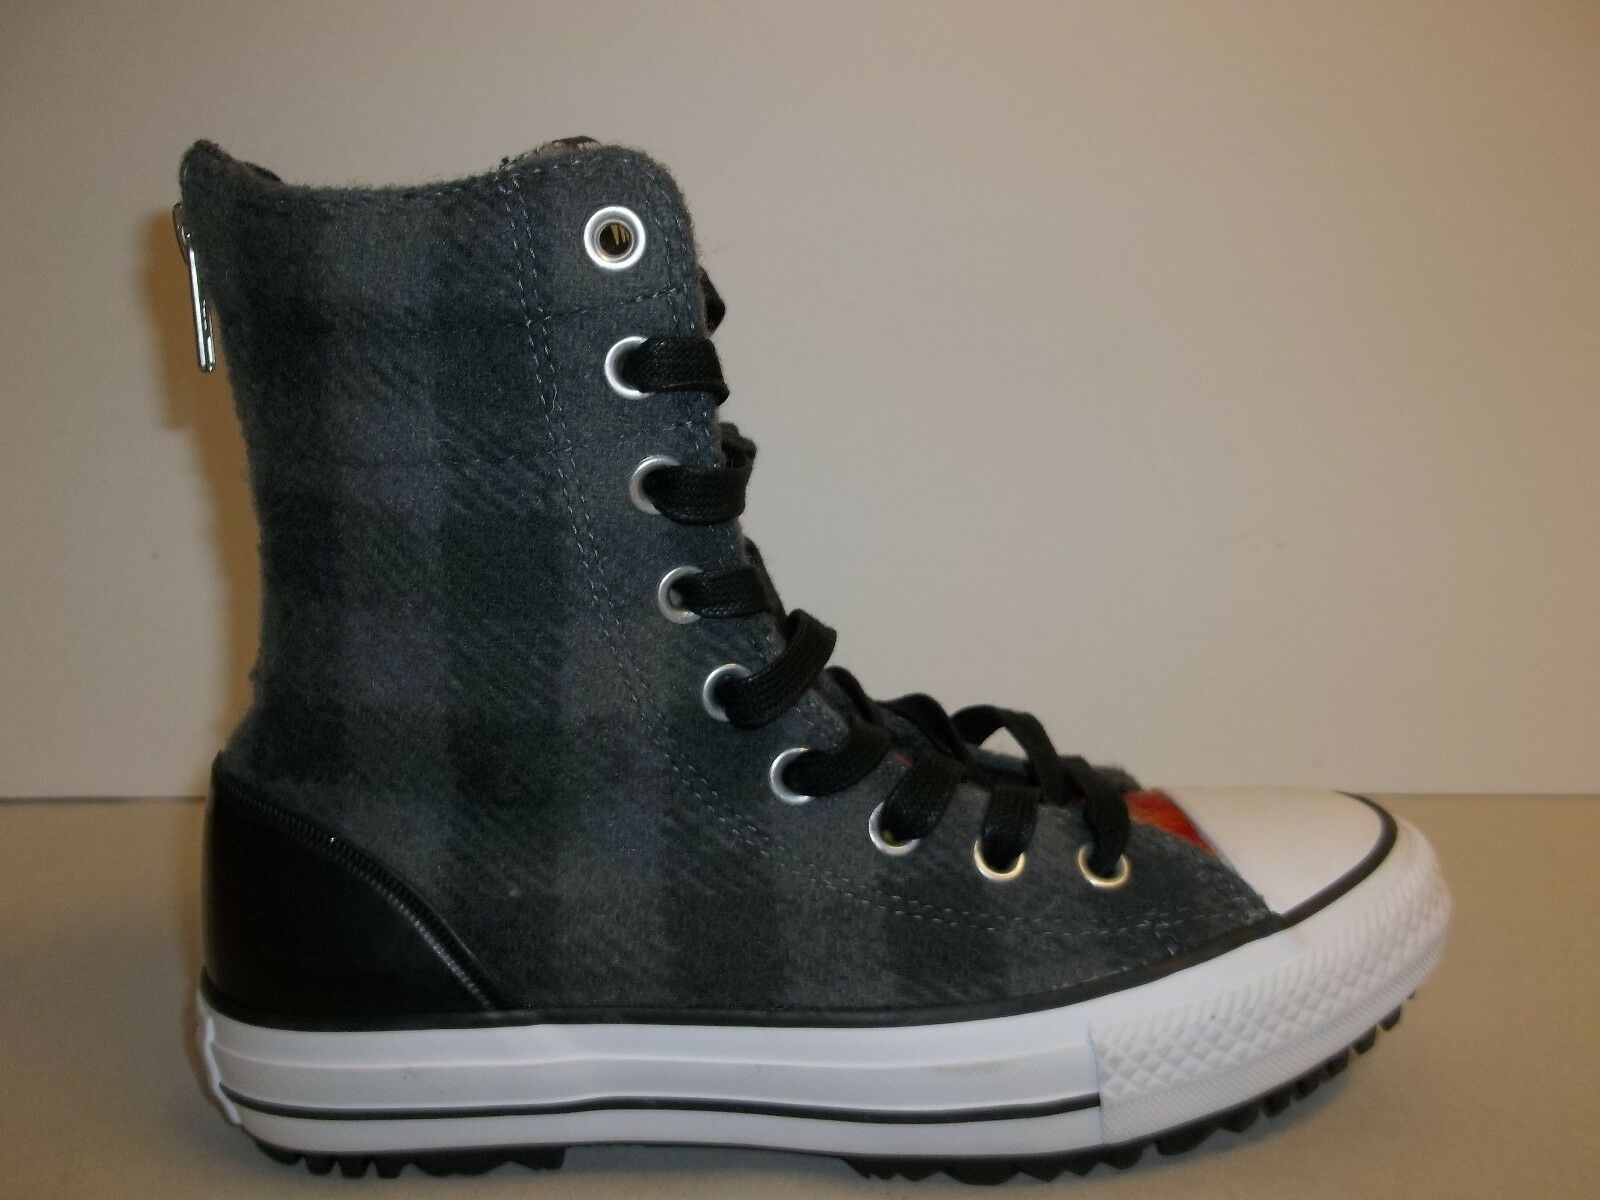 Converse Size 6.5 CT HI-RISE BOOT Gray Wool Woolrich Boots New Womens Shoes